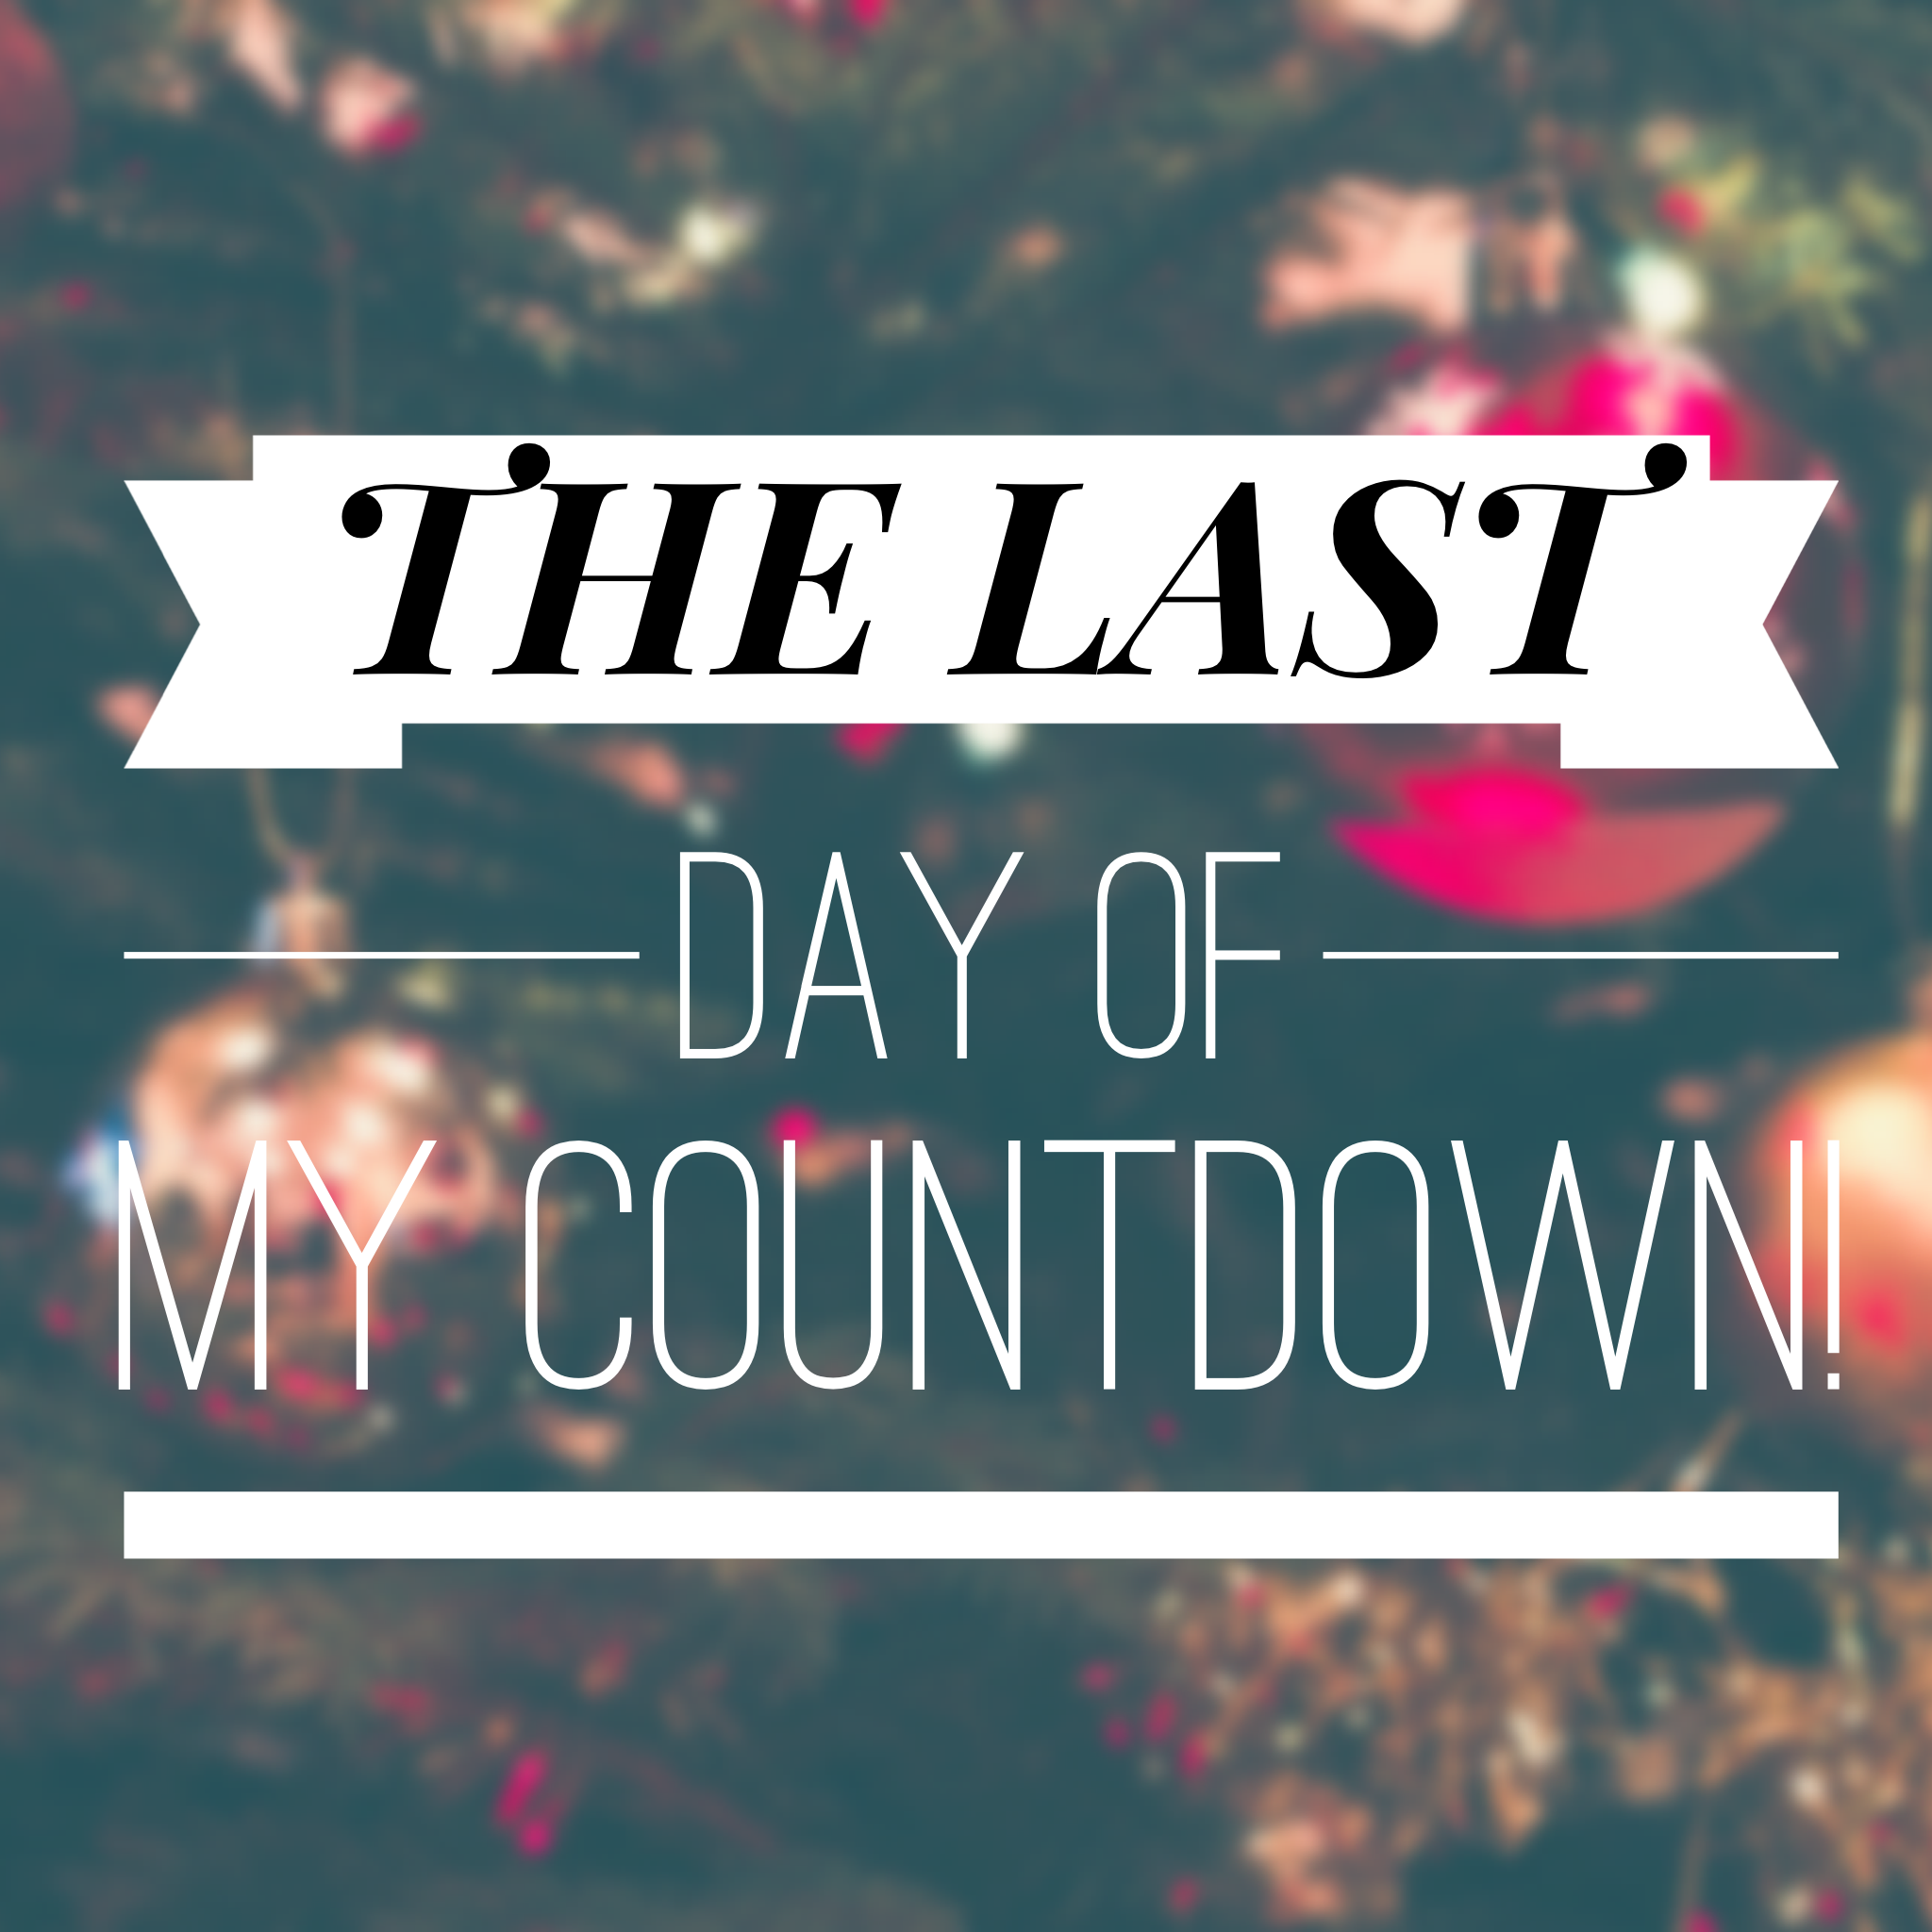 1 DAY: The of end my Countdown!